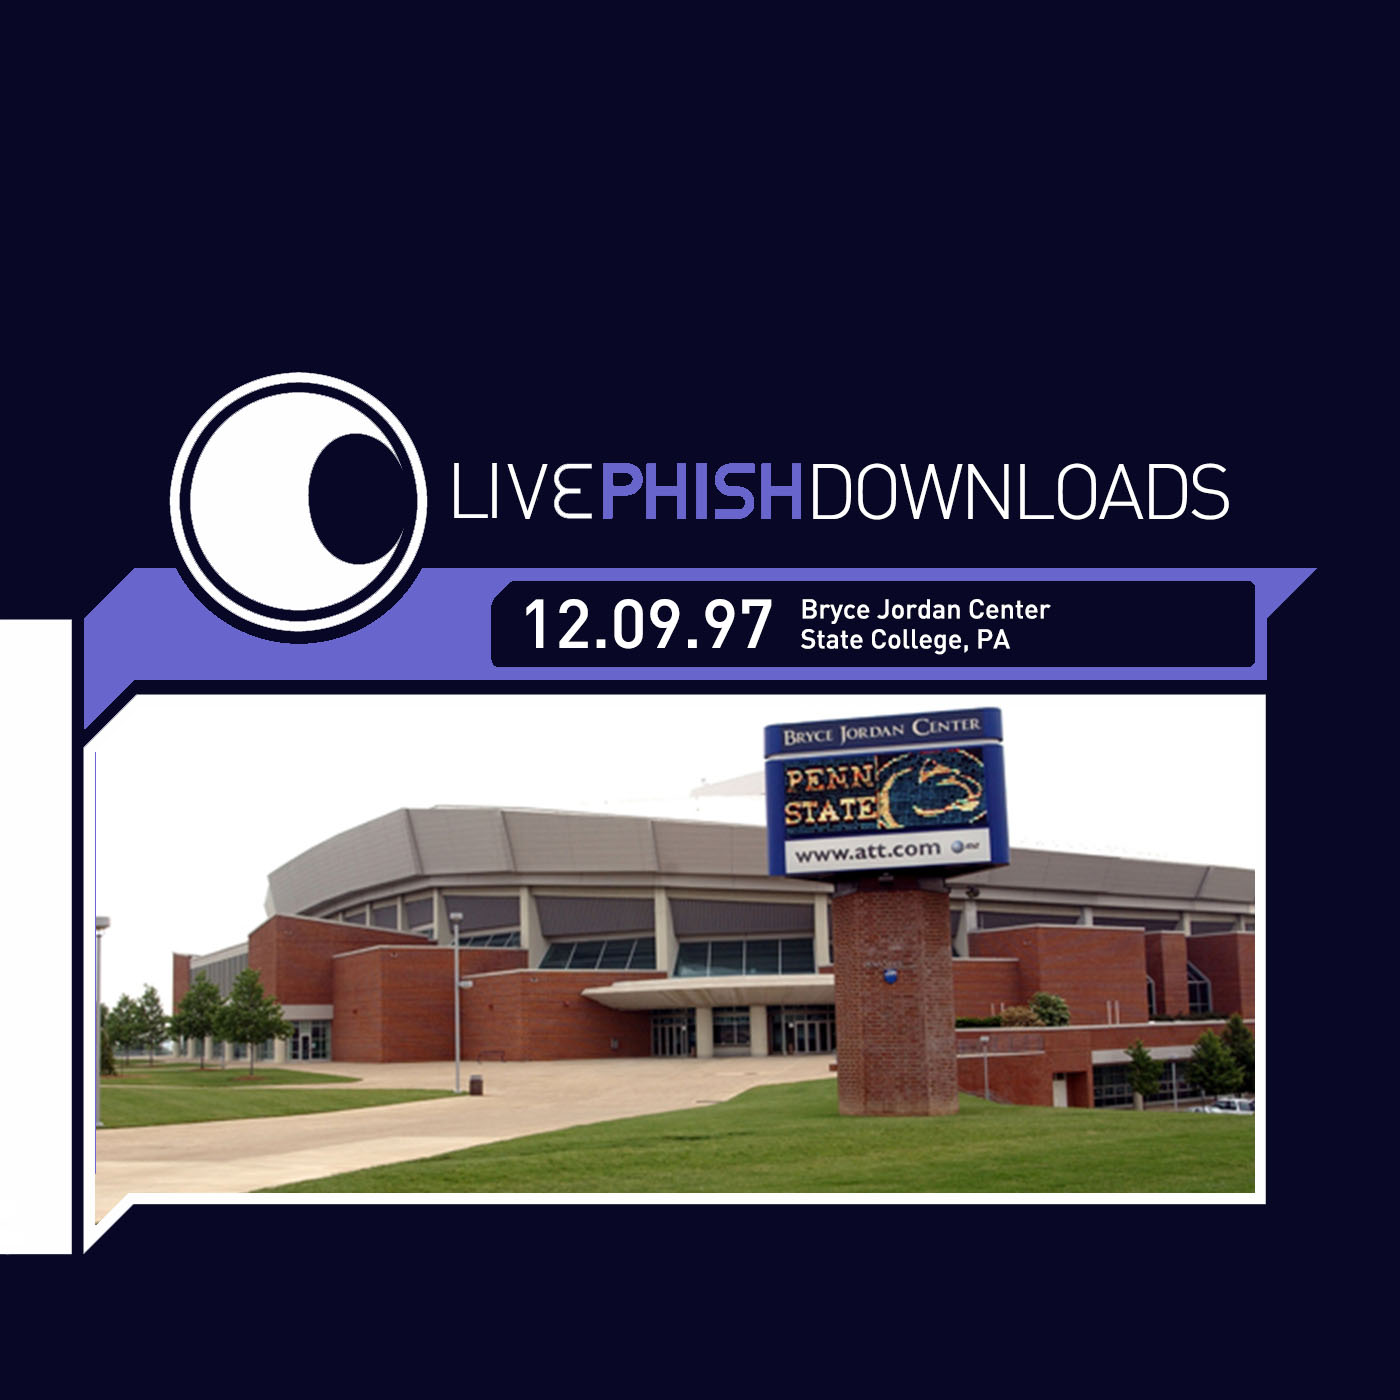 occidental Moderar posición  The Curtain With: Phish - 1997-12-09 Bryce Jordan Center, State College, PA  (Simple)